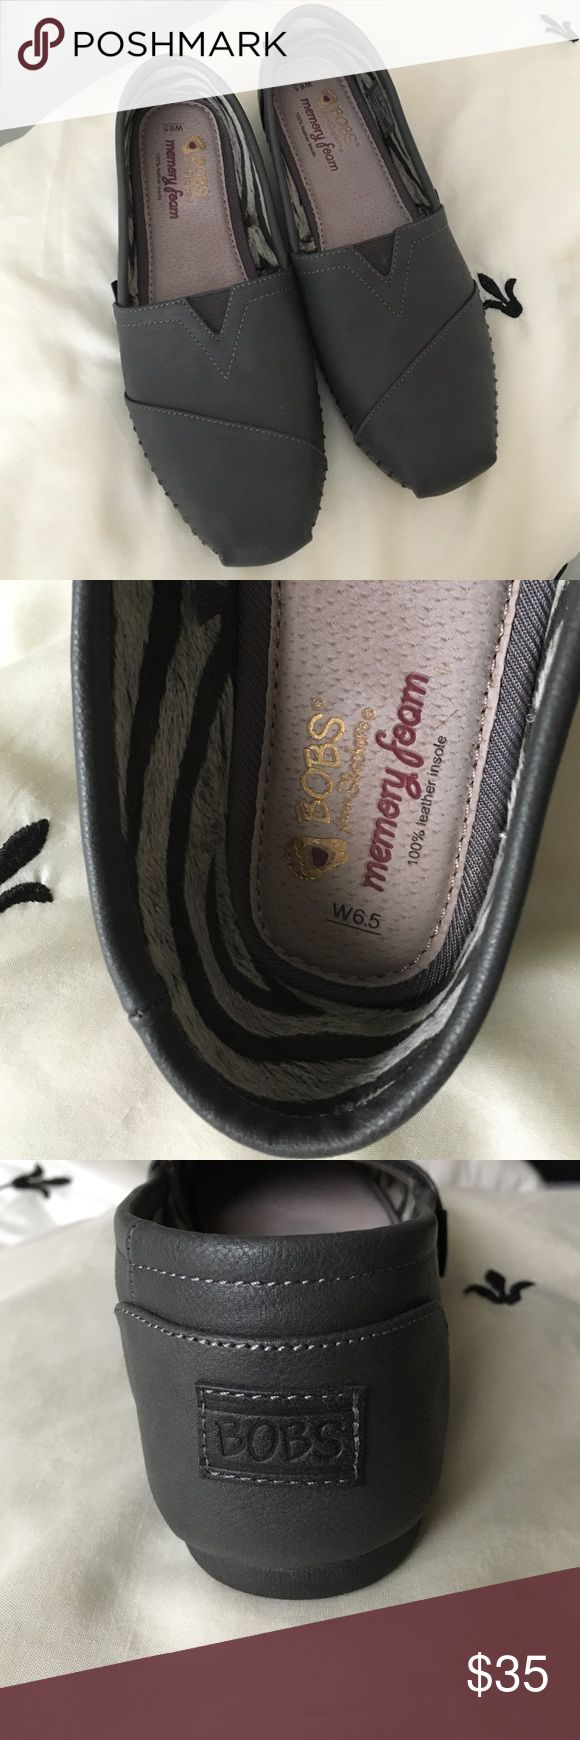 Shoes Bobs flat slide on shoes. Wore once. Gray, leather with memory foam. 6.5 (w). Excellent condition. Paid 55.00 originally. bobs Shoes Flats & Loafers